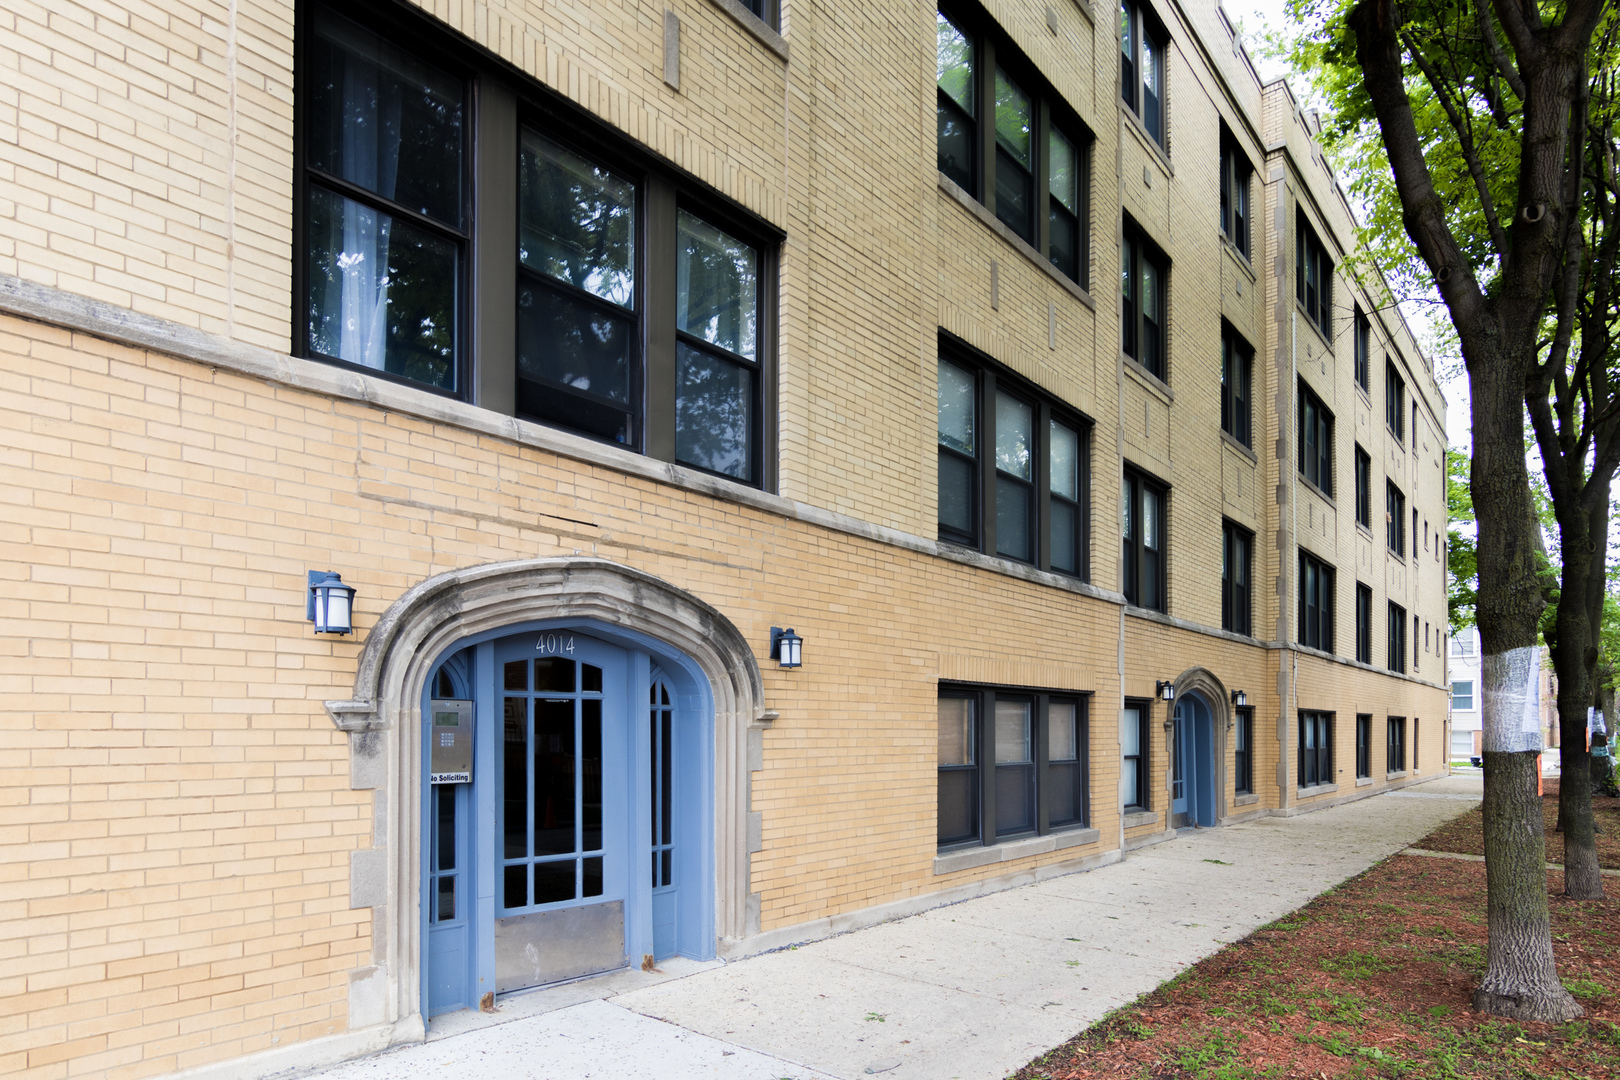 North Spaulding Ave., Chicago, IL 60618